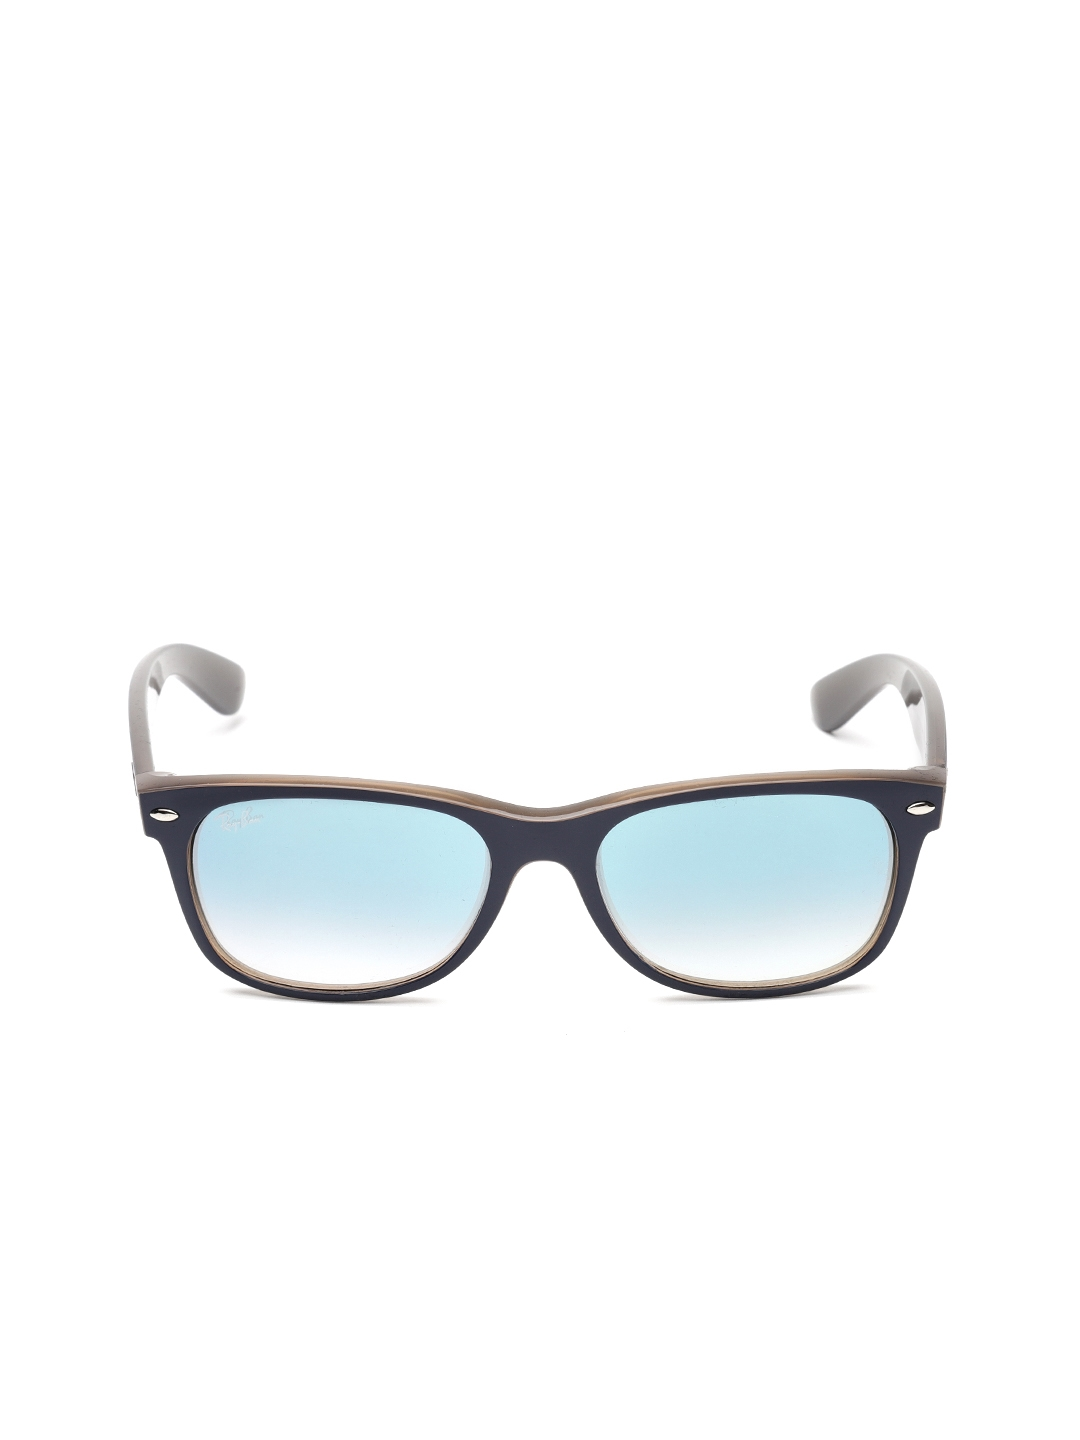 117ce9d0263 Buy Ray Ban Men UV Protected Rectangle Sunglasses 0RB213263083F55 ...